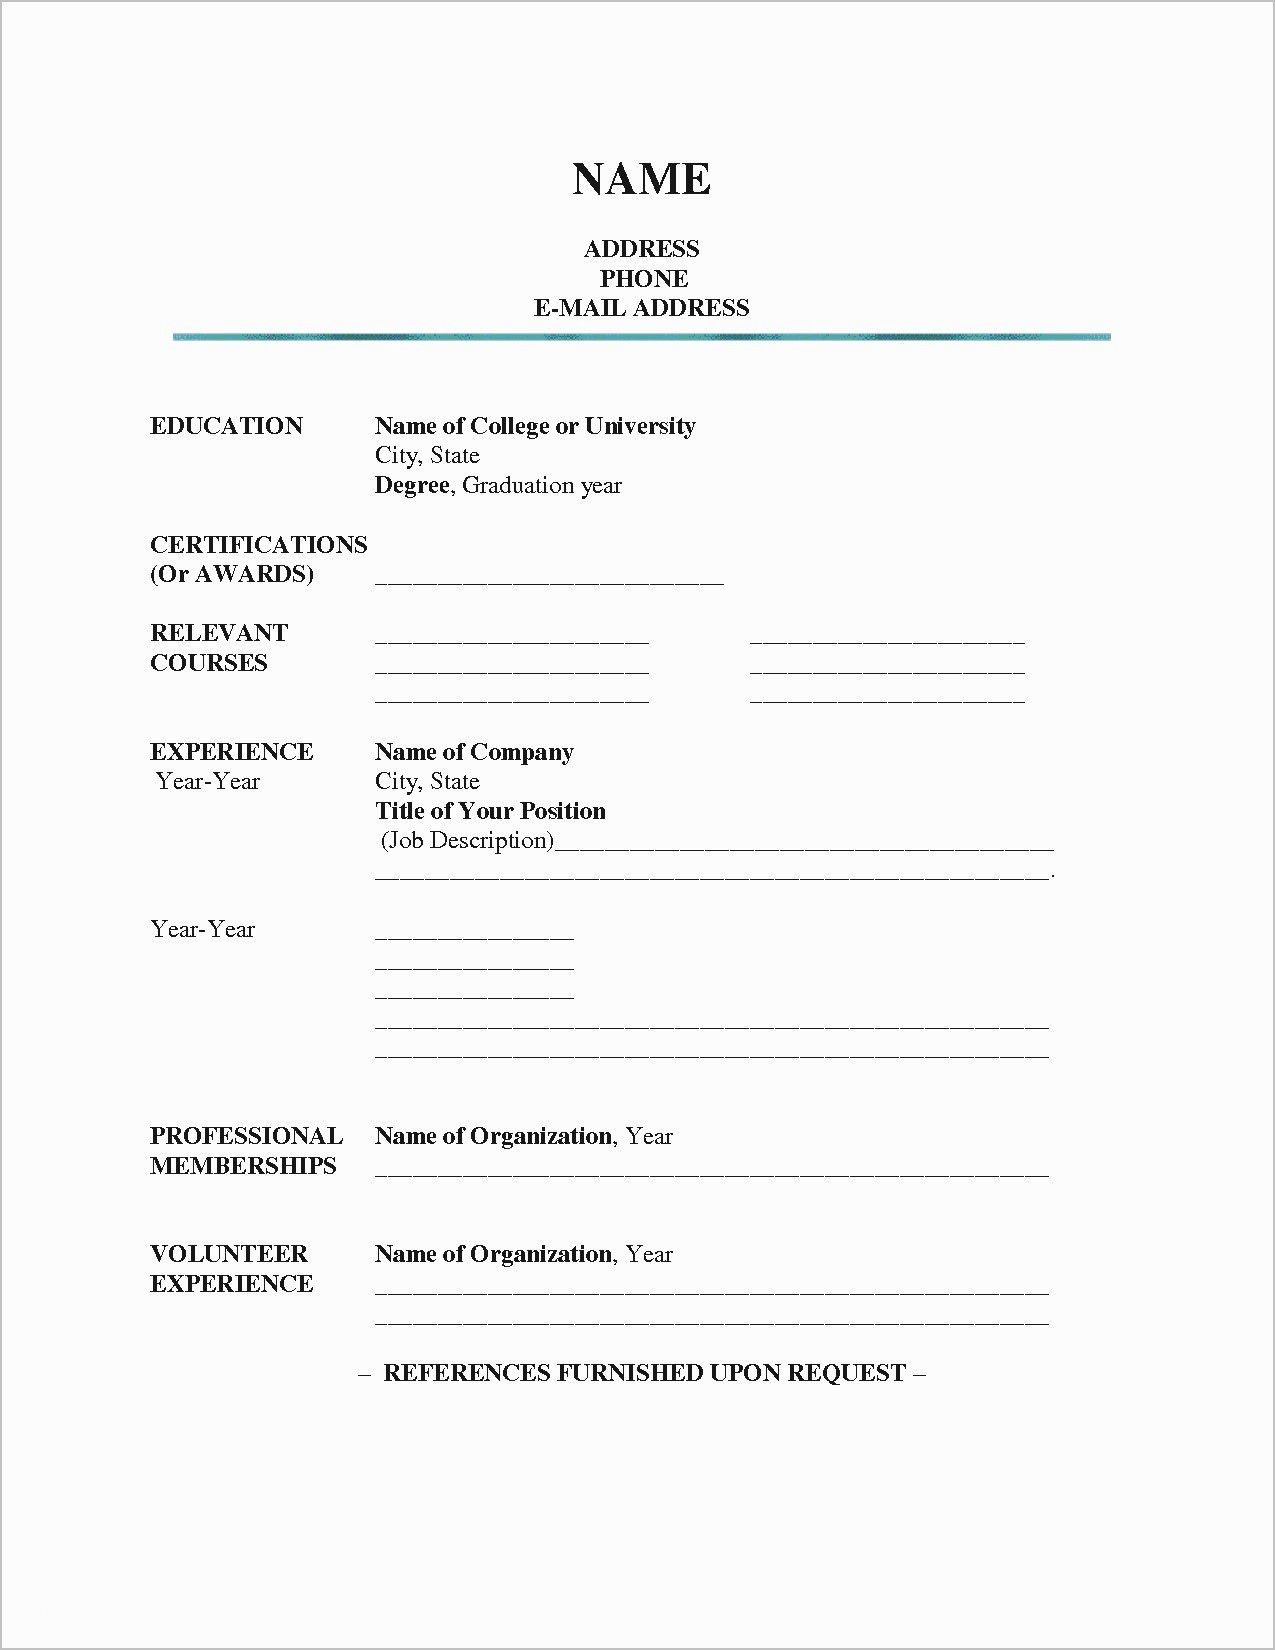 Resume forms to Fill Out Inspirational Blank Resume Pdf Unique Blank Resume forms to Fill Out